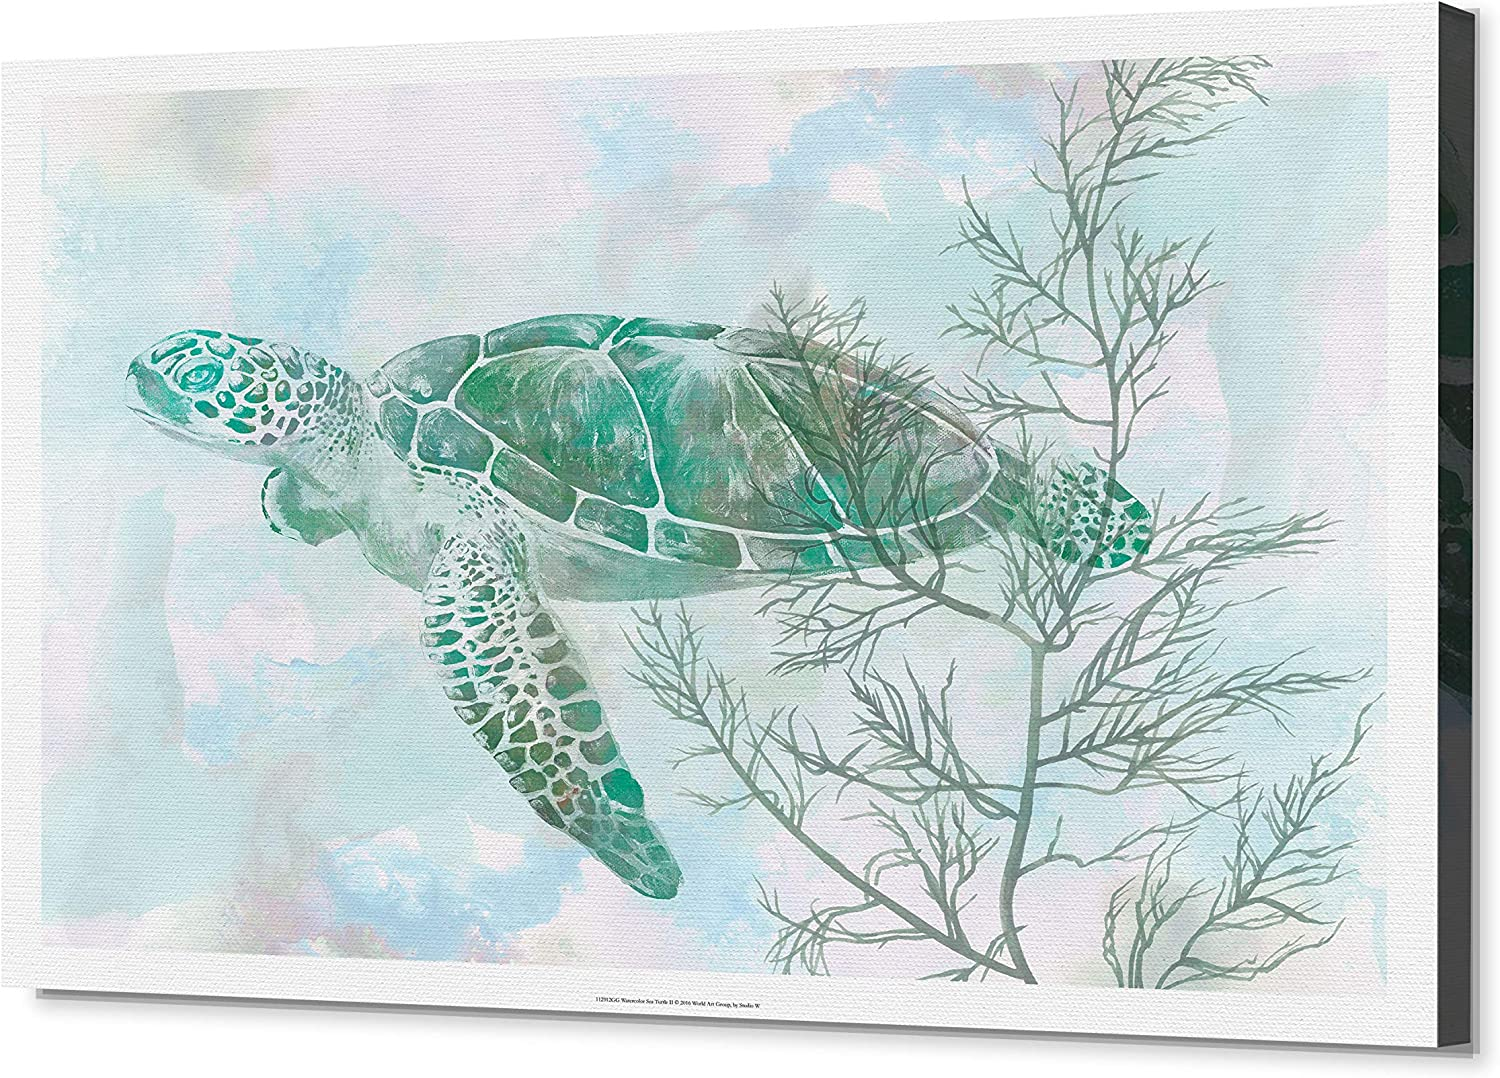 Wexford Home Watercolor Sea Turtle Ii Gallery Wrapped Canvas Wall Art 24x32 Home Kitchen